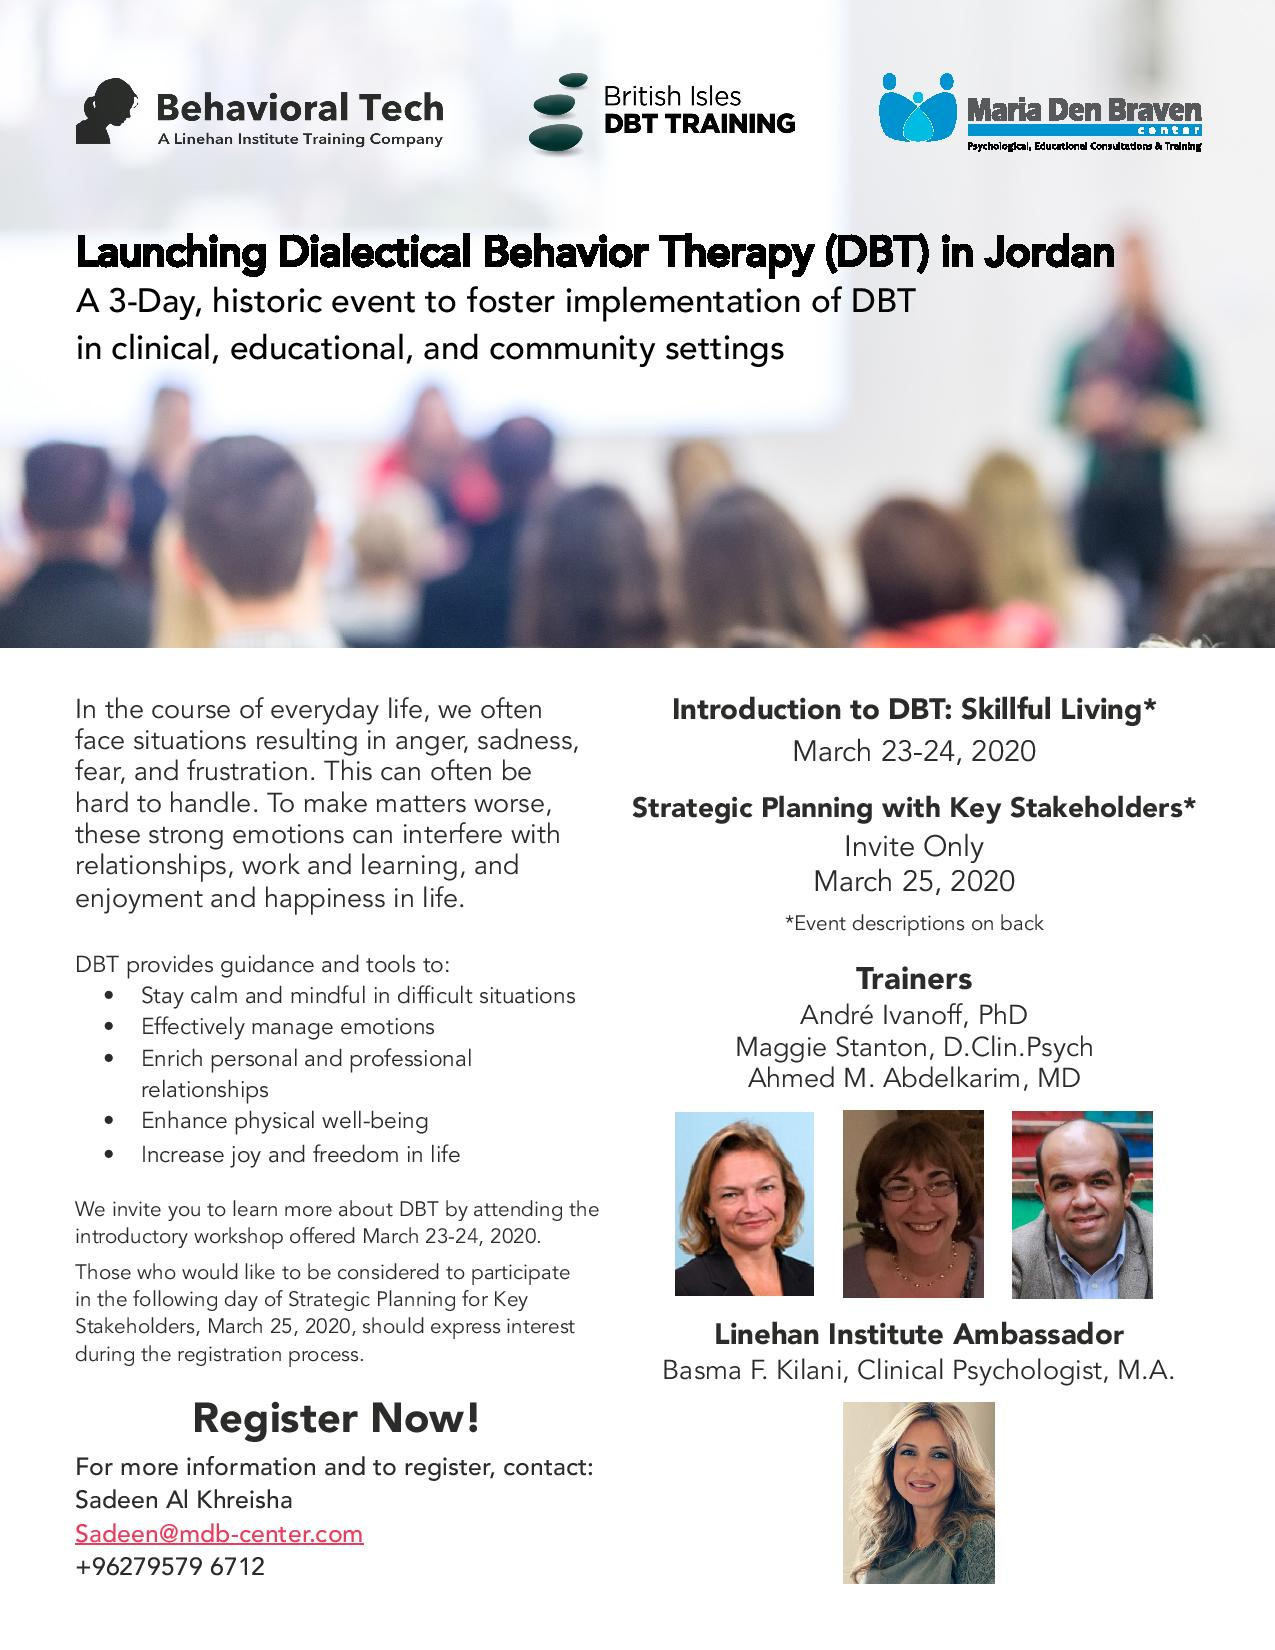 Launching Dialectical Behavior Therapy (DBT) in Jordan